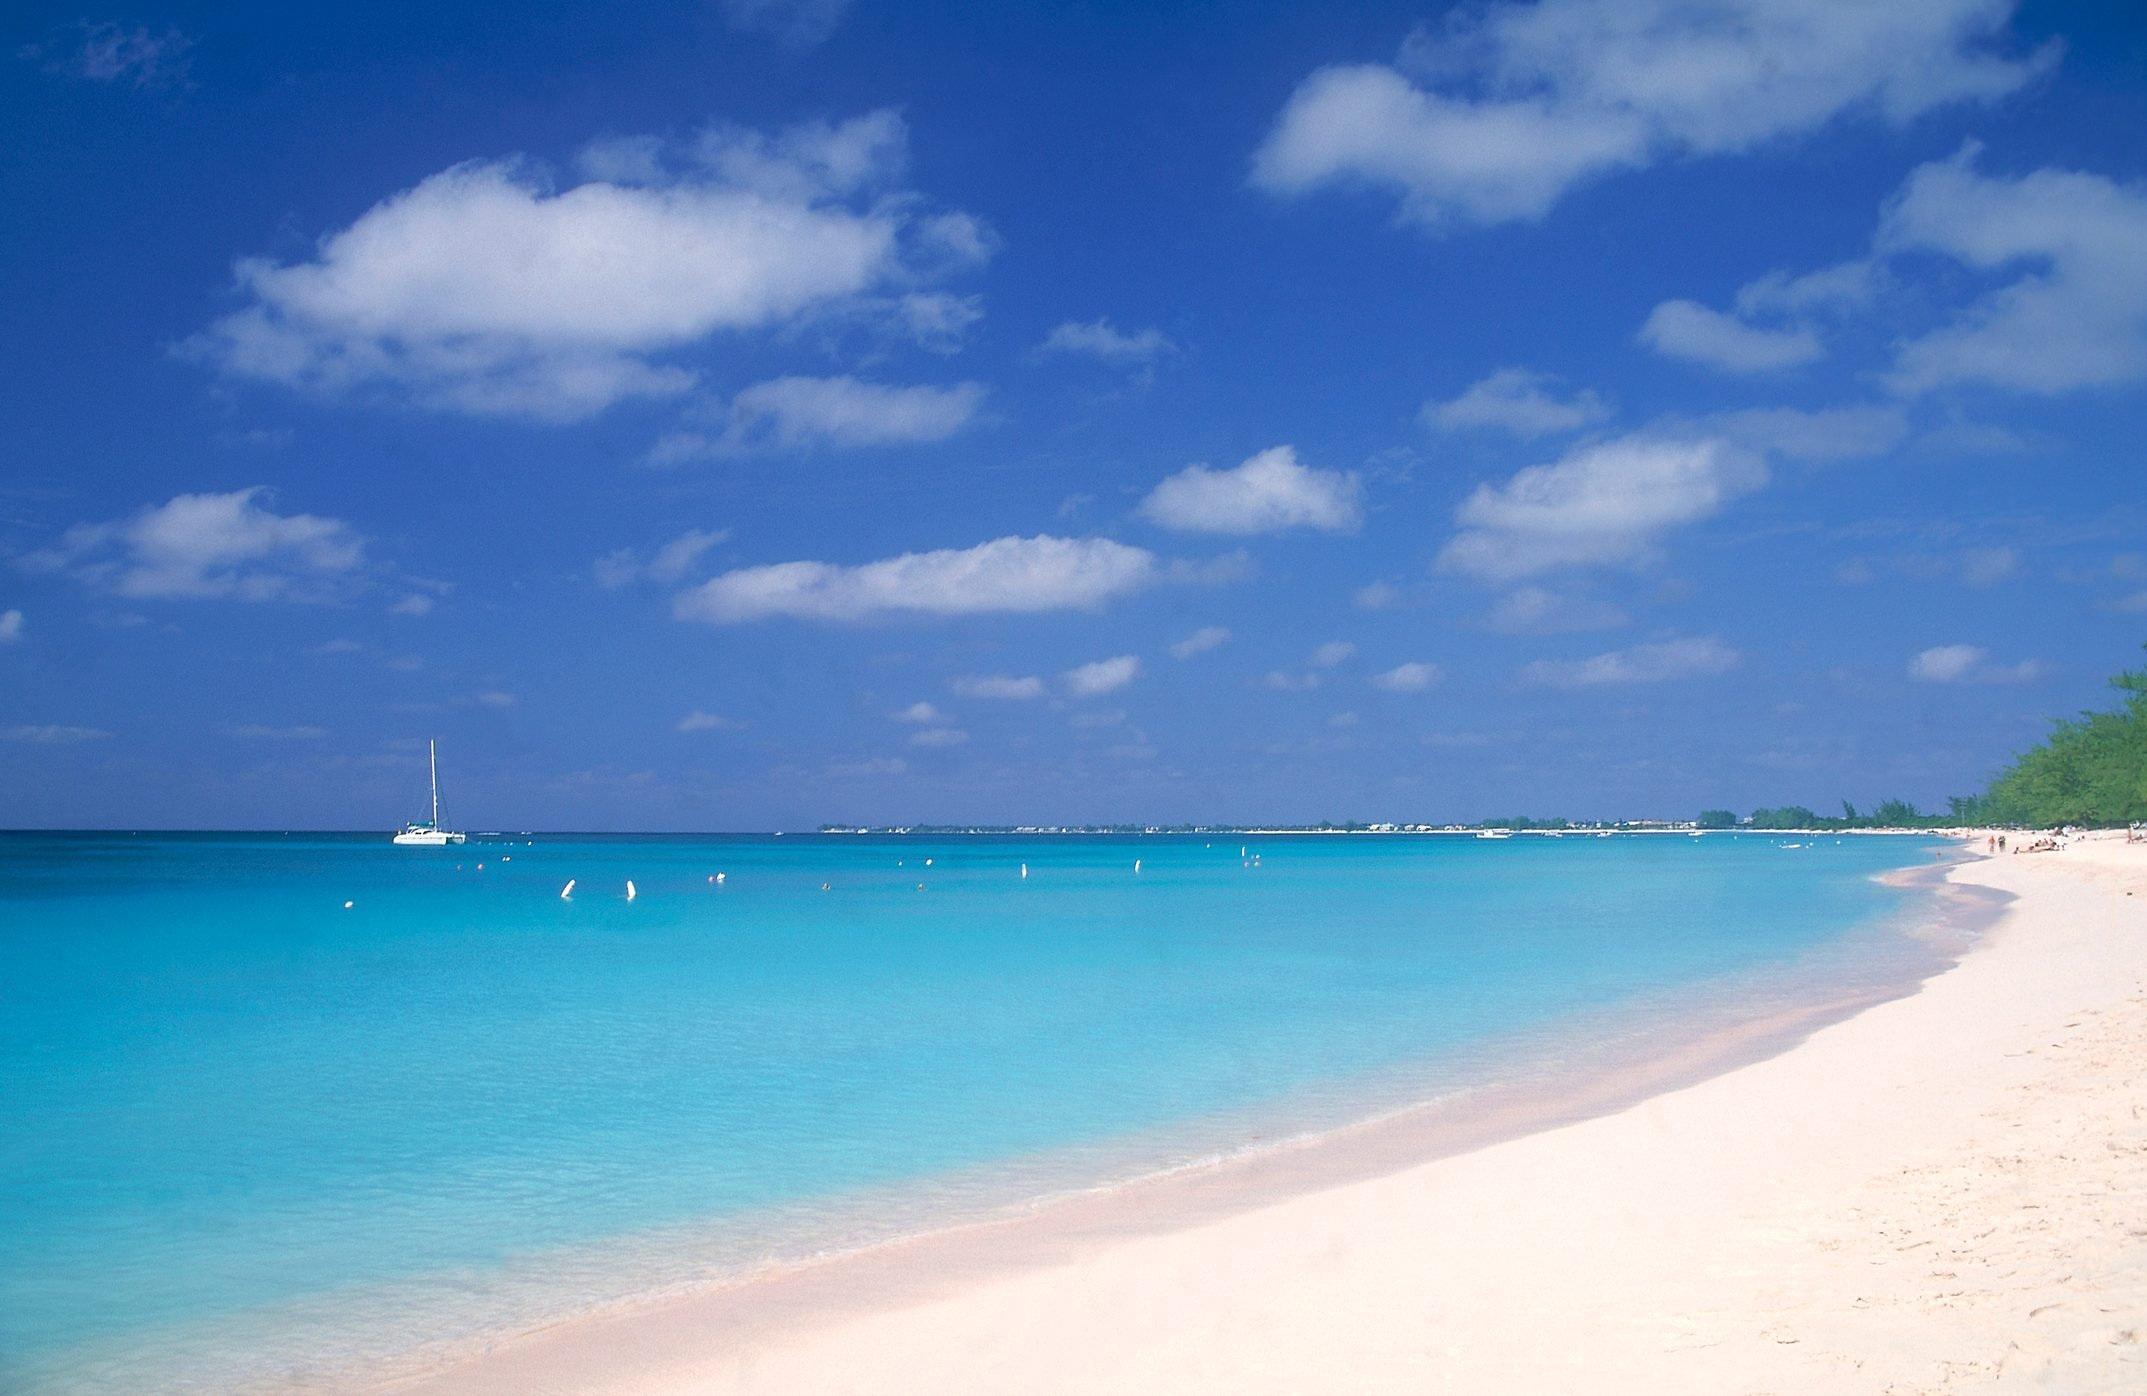 White sand beach with with blue water and skies, Seven Mile Beach, Grand Cayman Island